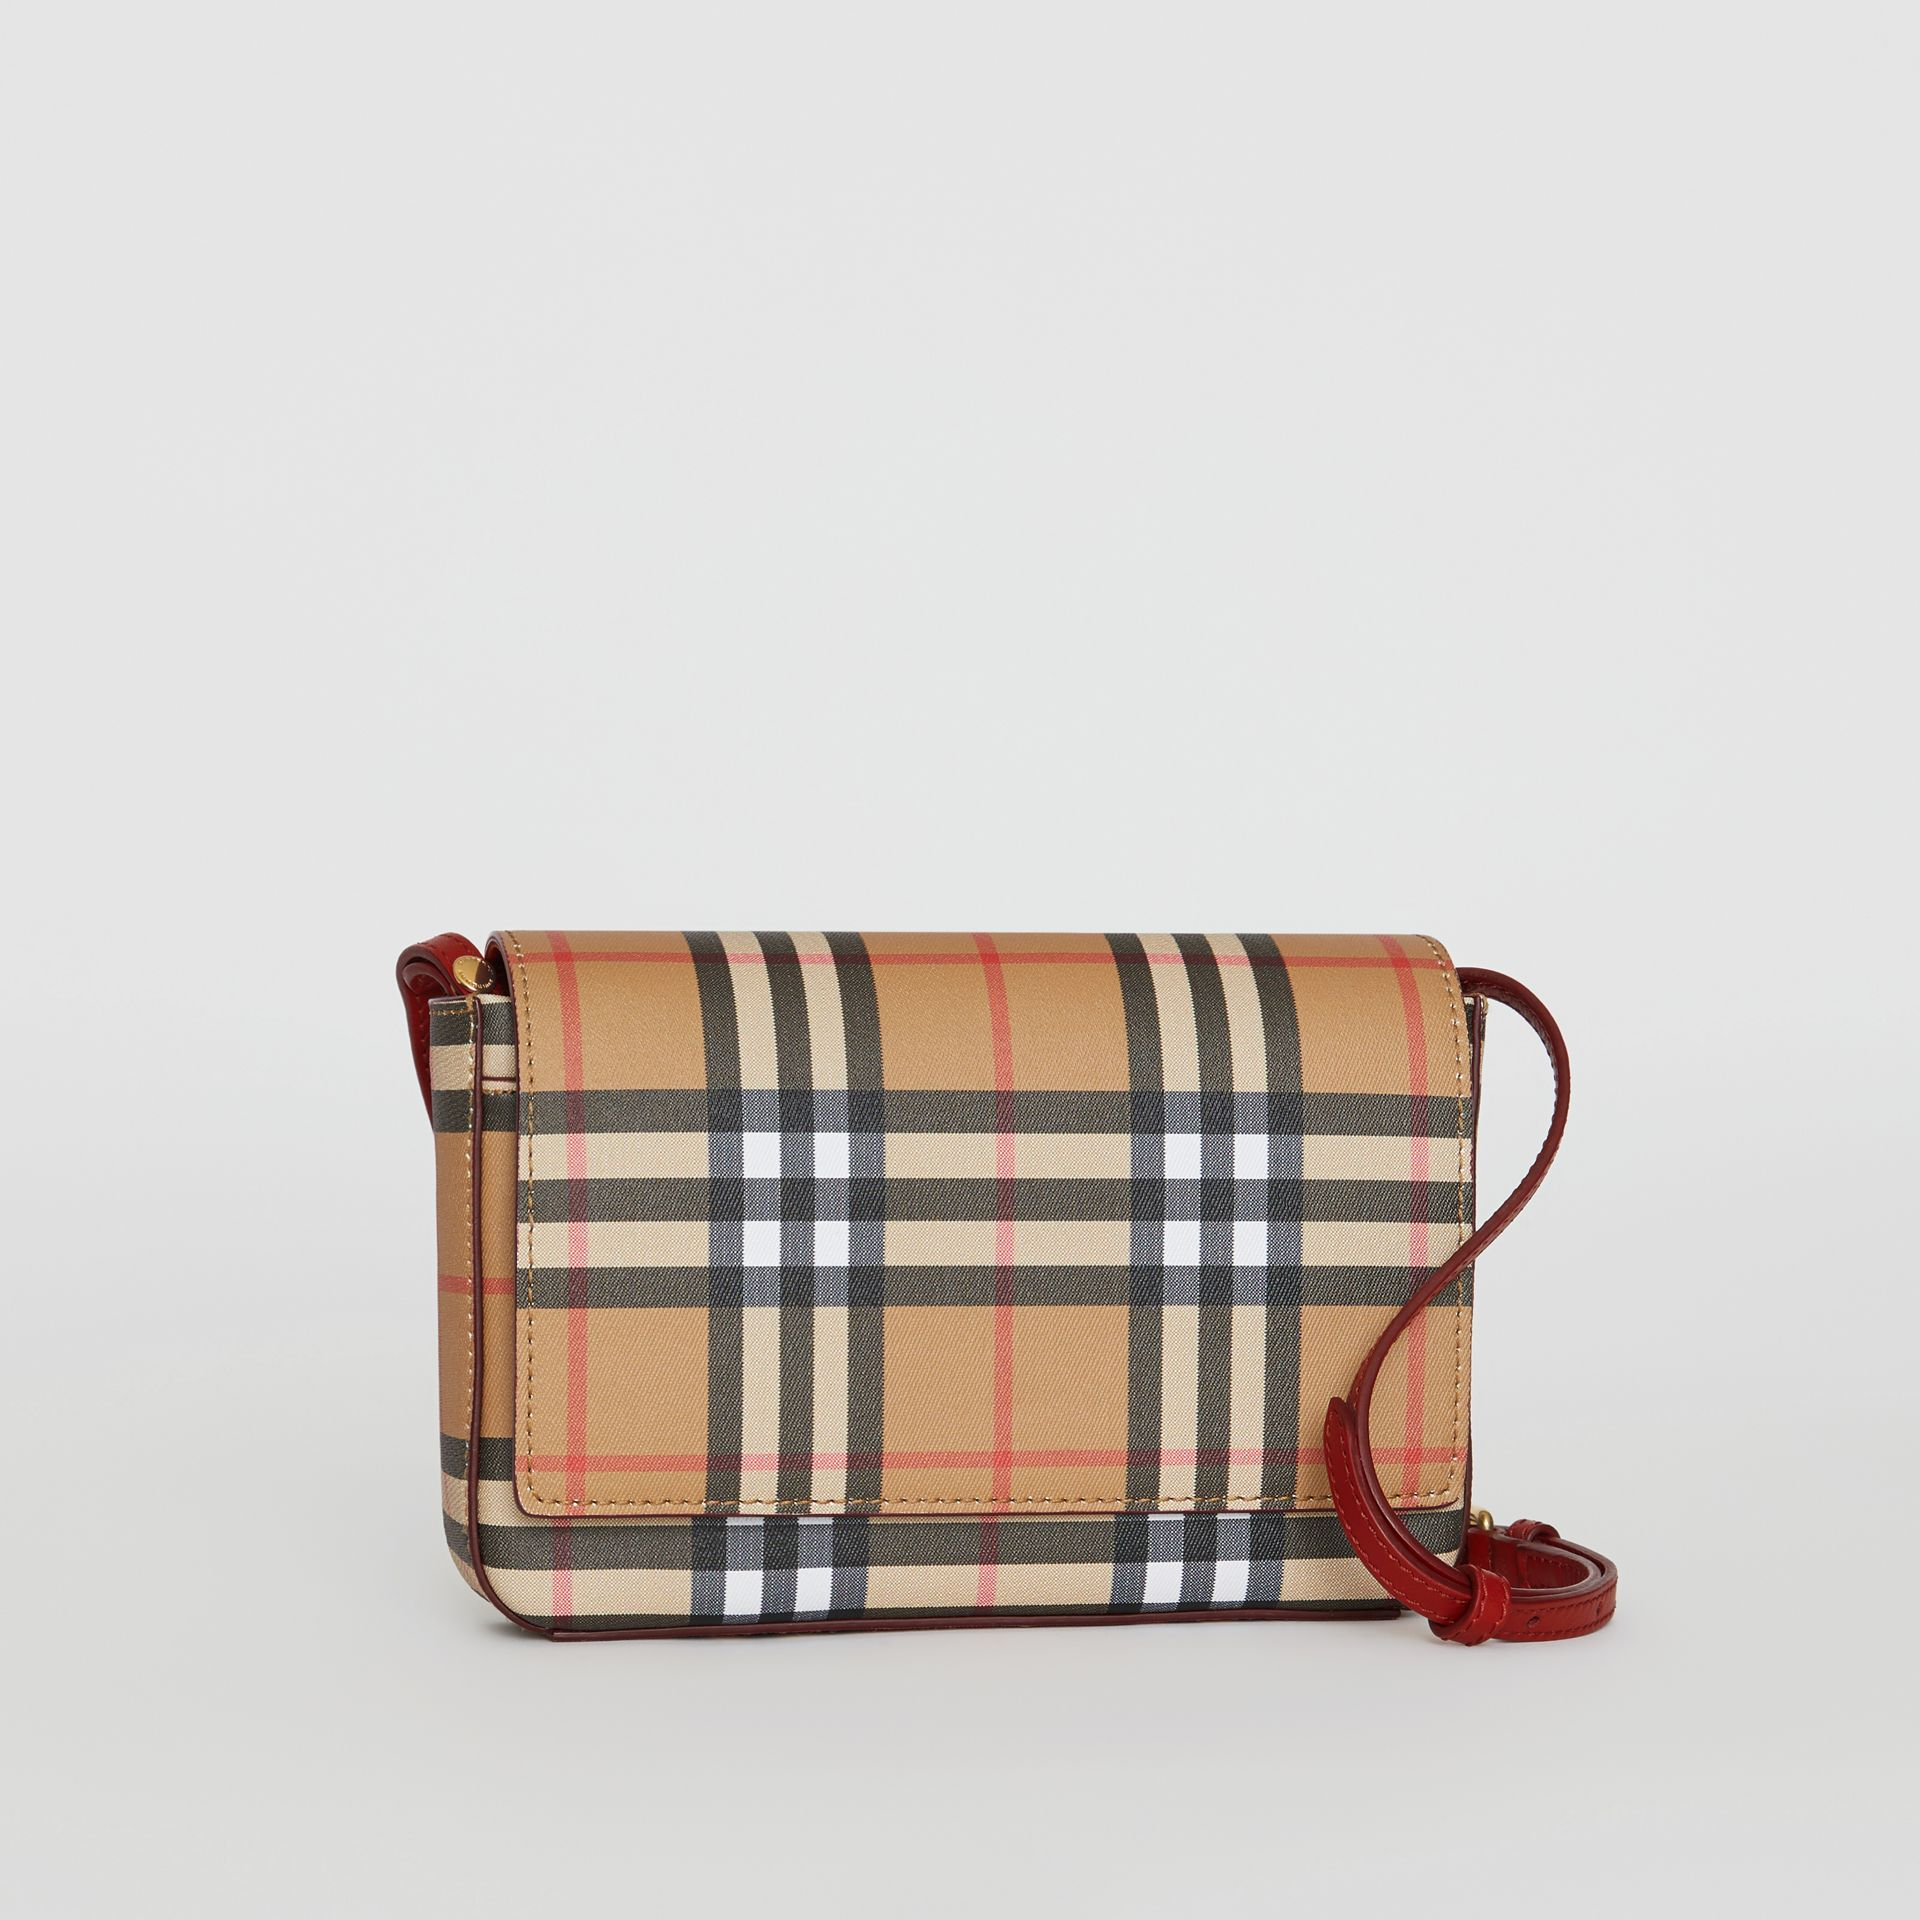 Small Vintage Check and Leather Crossbody Bag in Crimson - Women | Burberry United States - gallery image 6